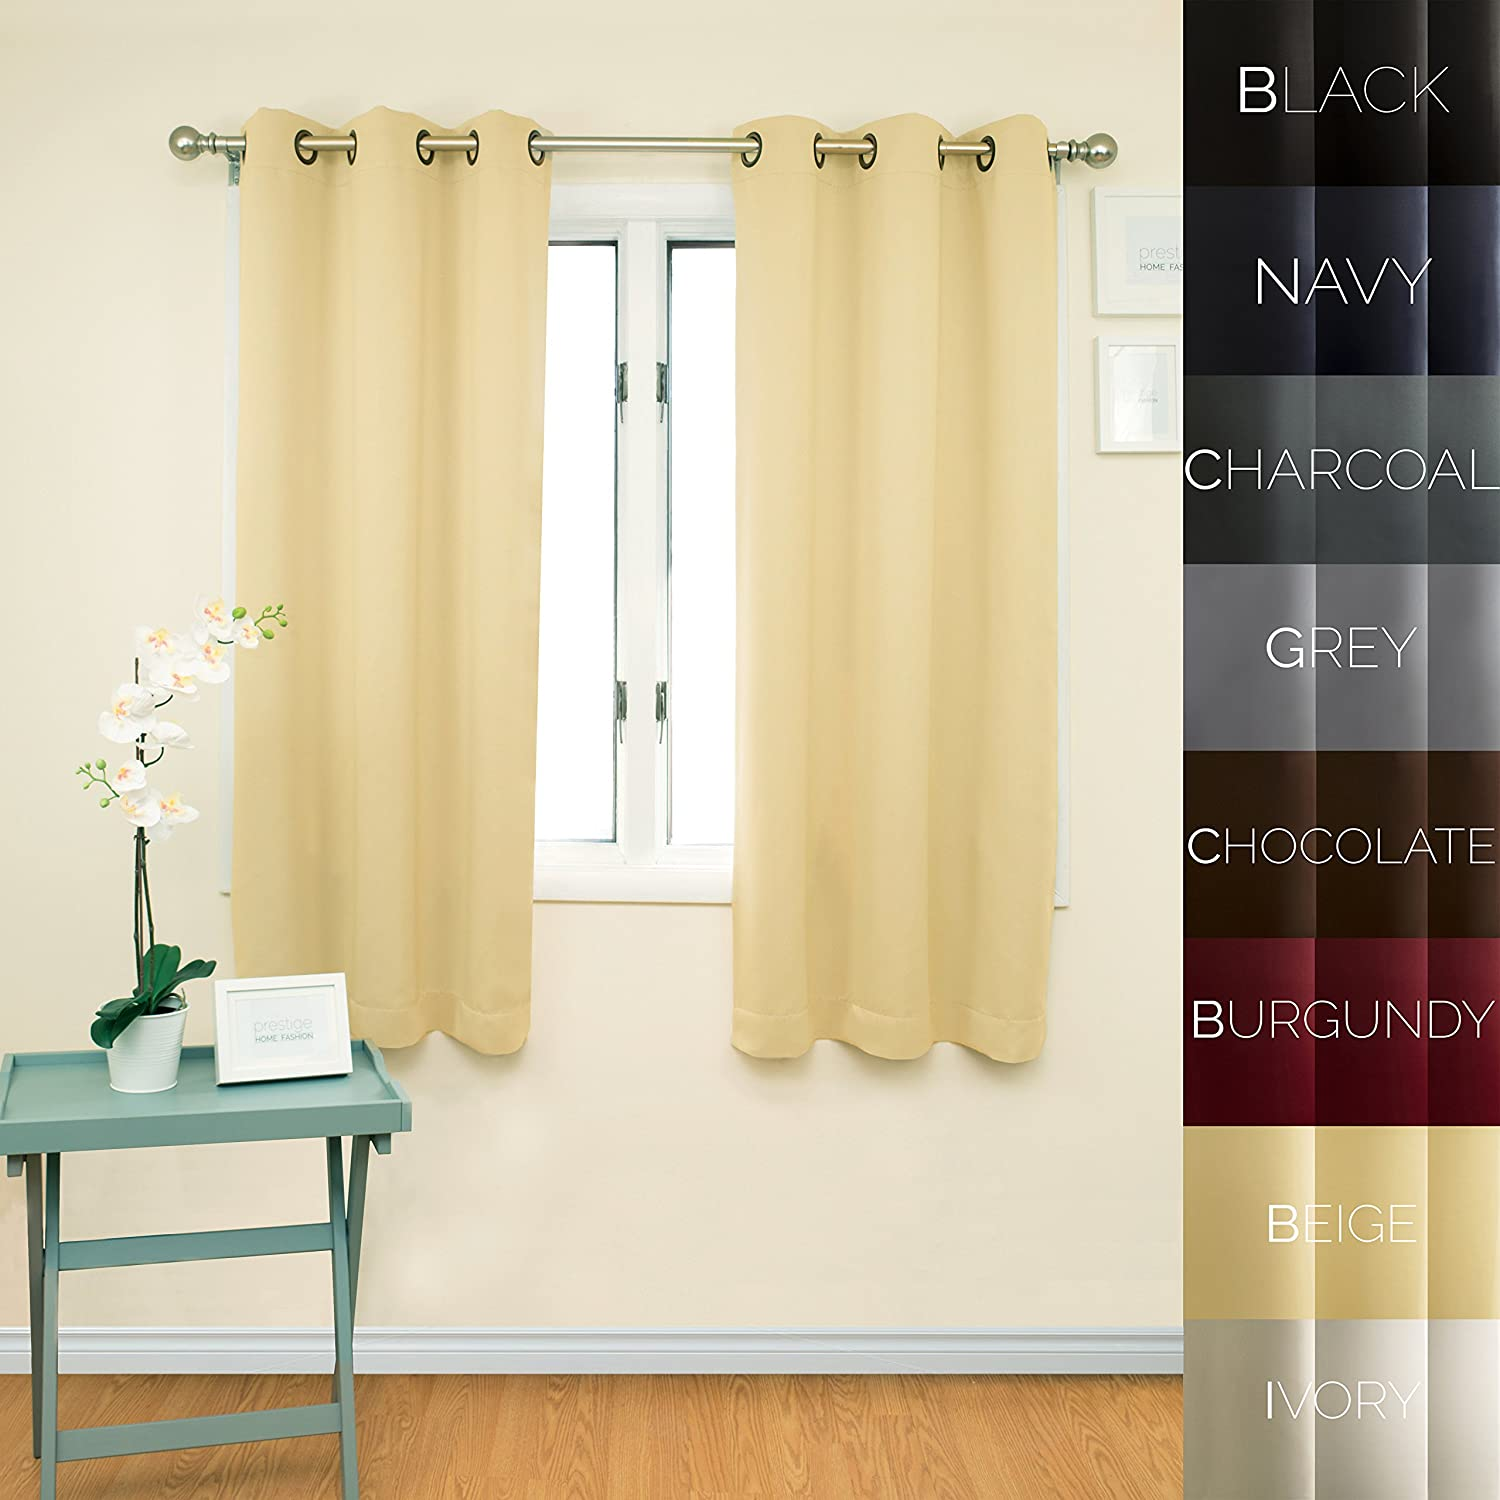 edison insulated size sale shocking amazon curtains full thermal on pattern deconovo living black concept pictures for room of blackout abstract curtain modernackout bedroomack bedroom com